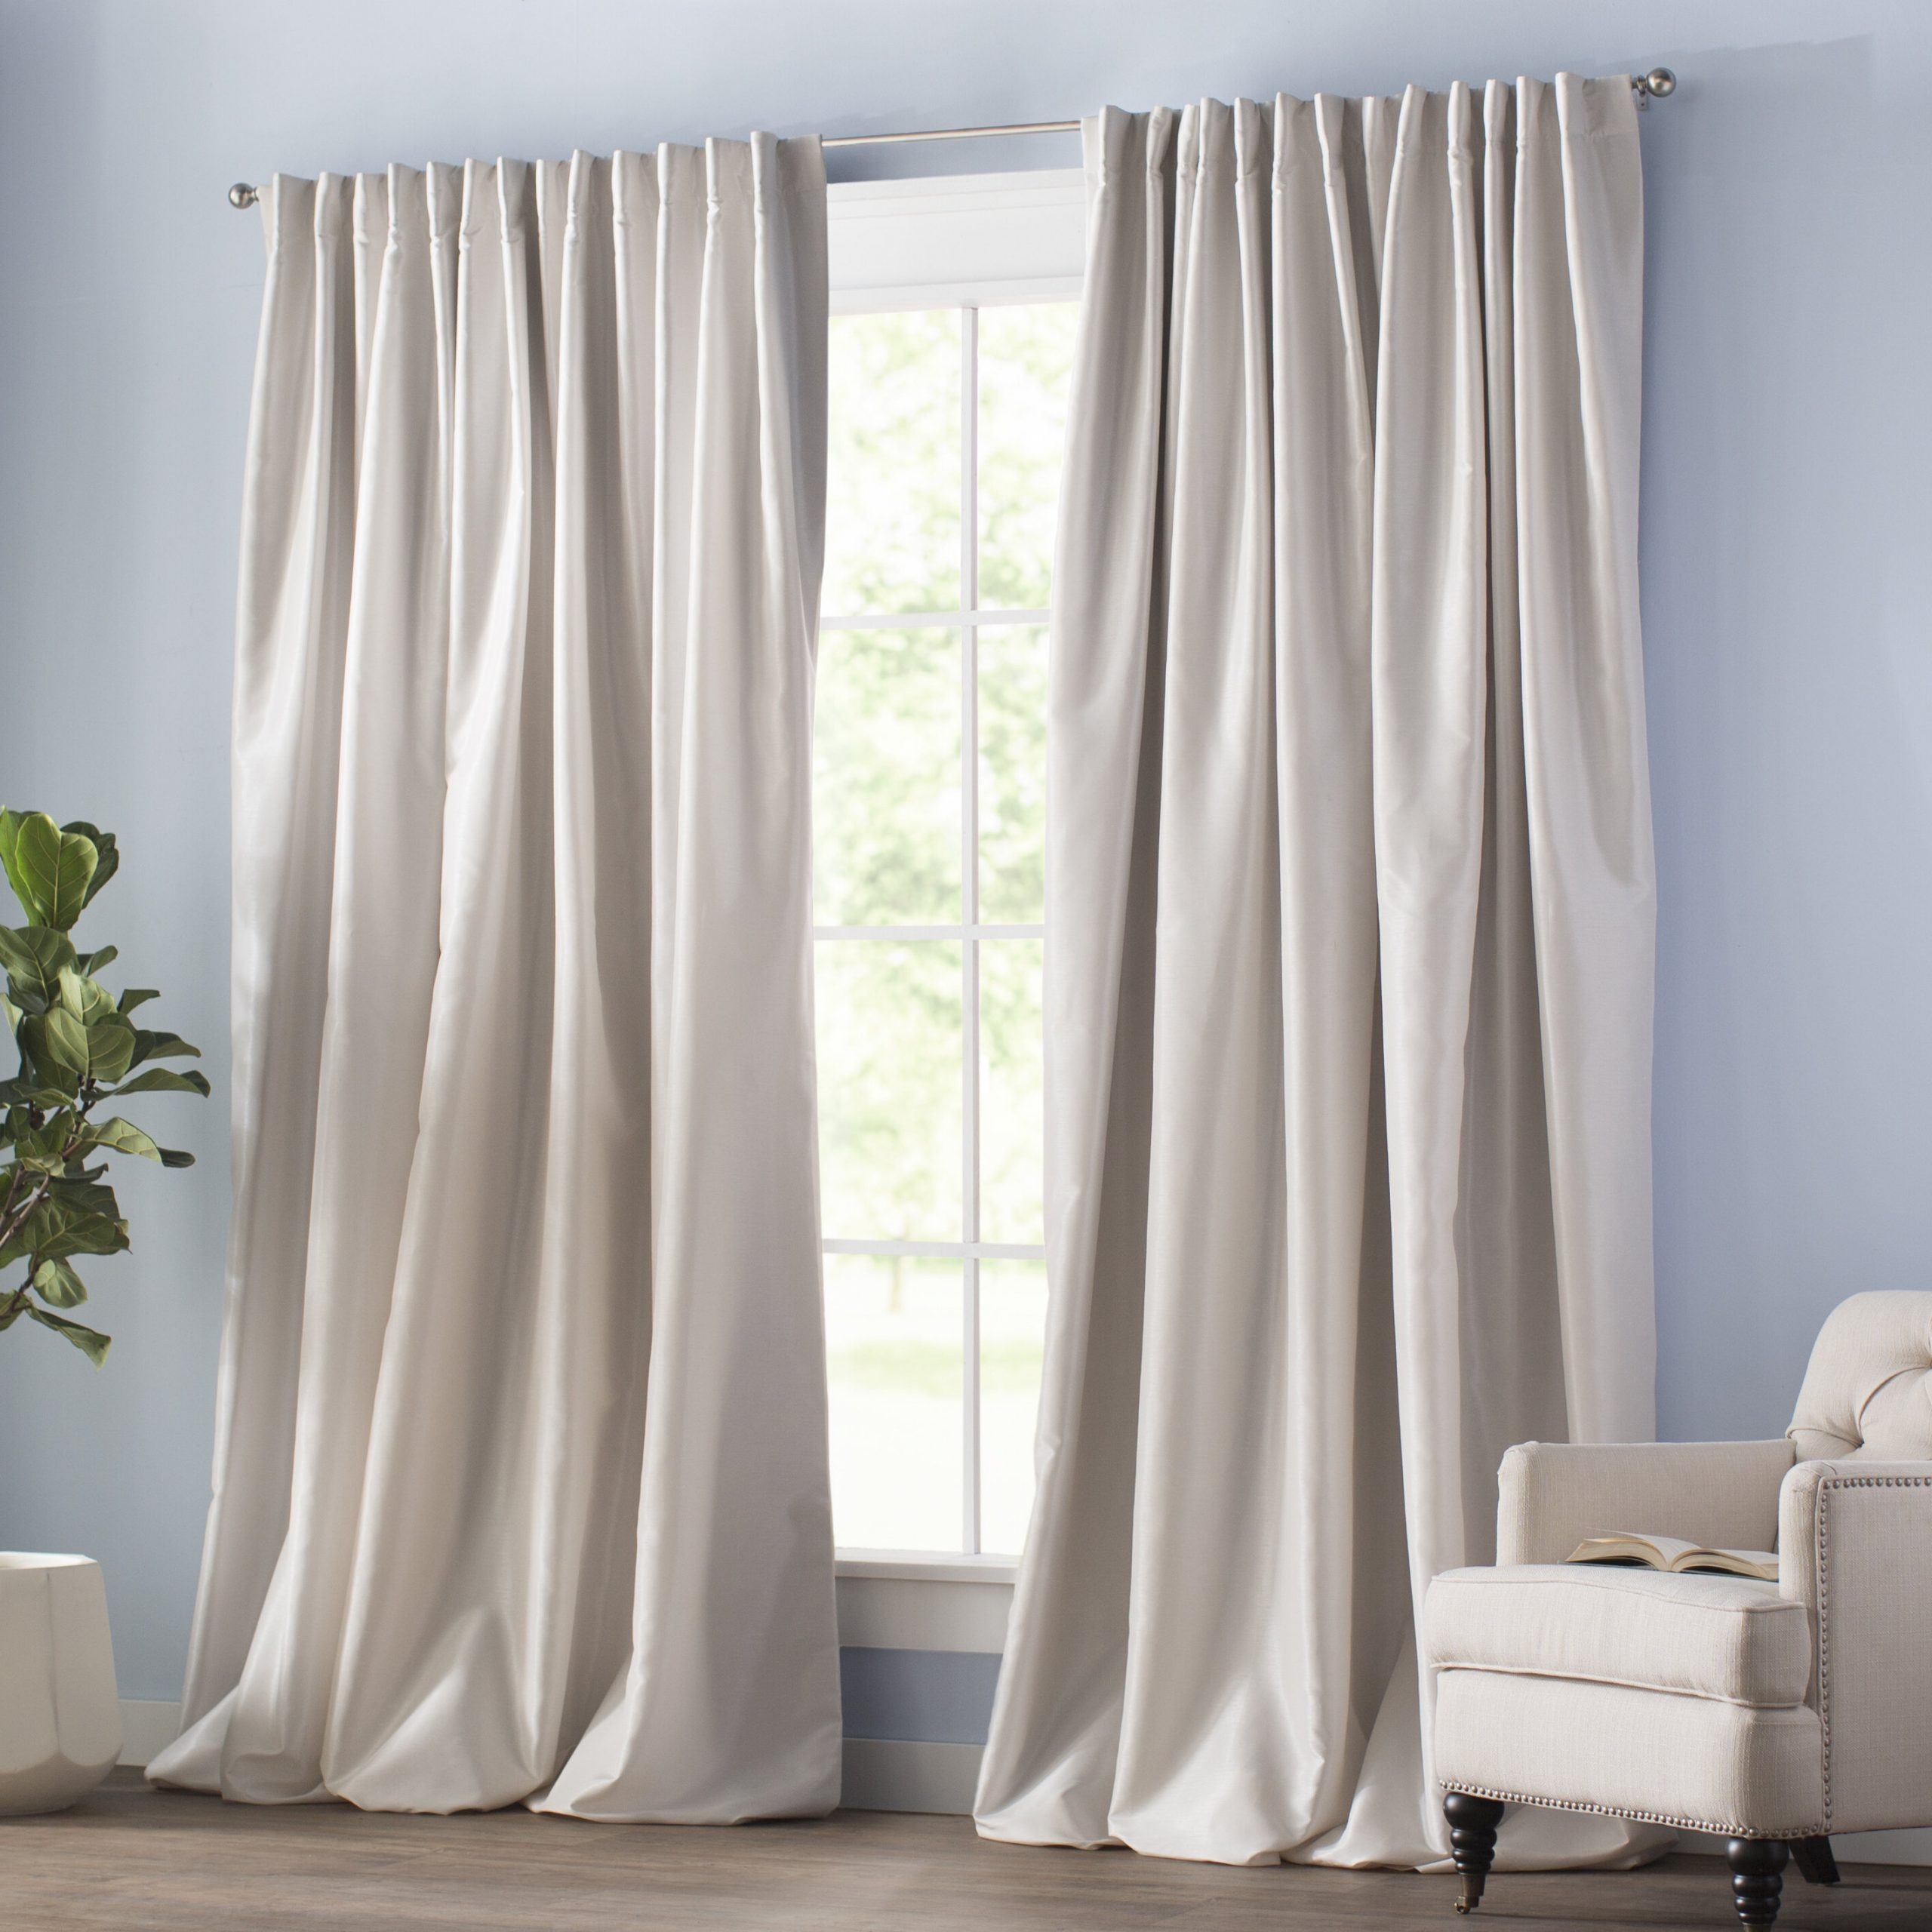 Blackout Rod Pocket Curtain Panels Inside Most Popular Velvet Dream Silver Curtain Panel Pairs (View 10 of 20)